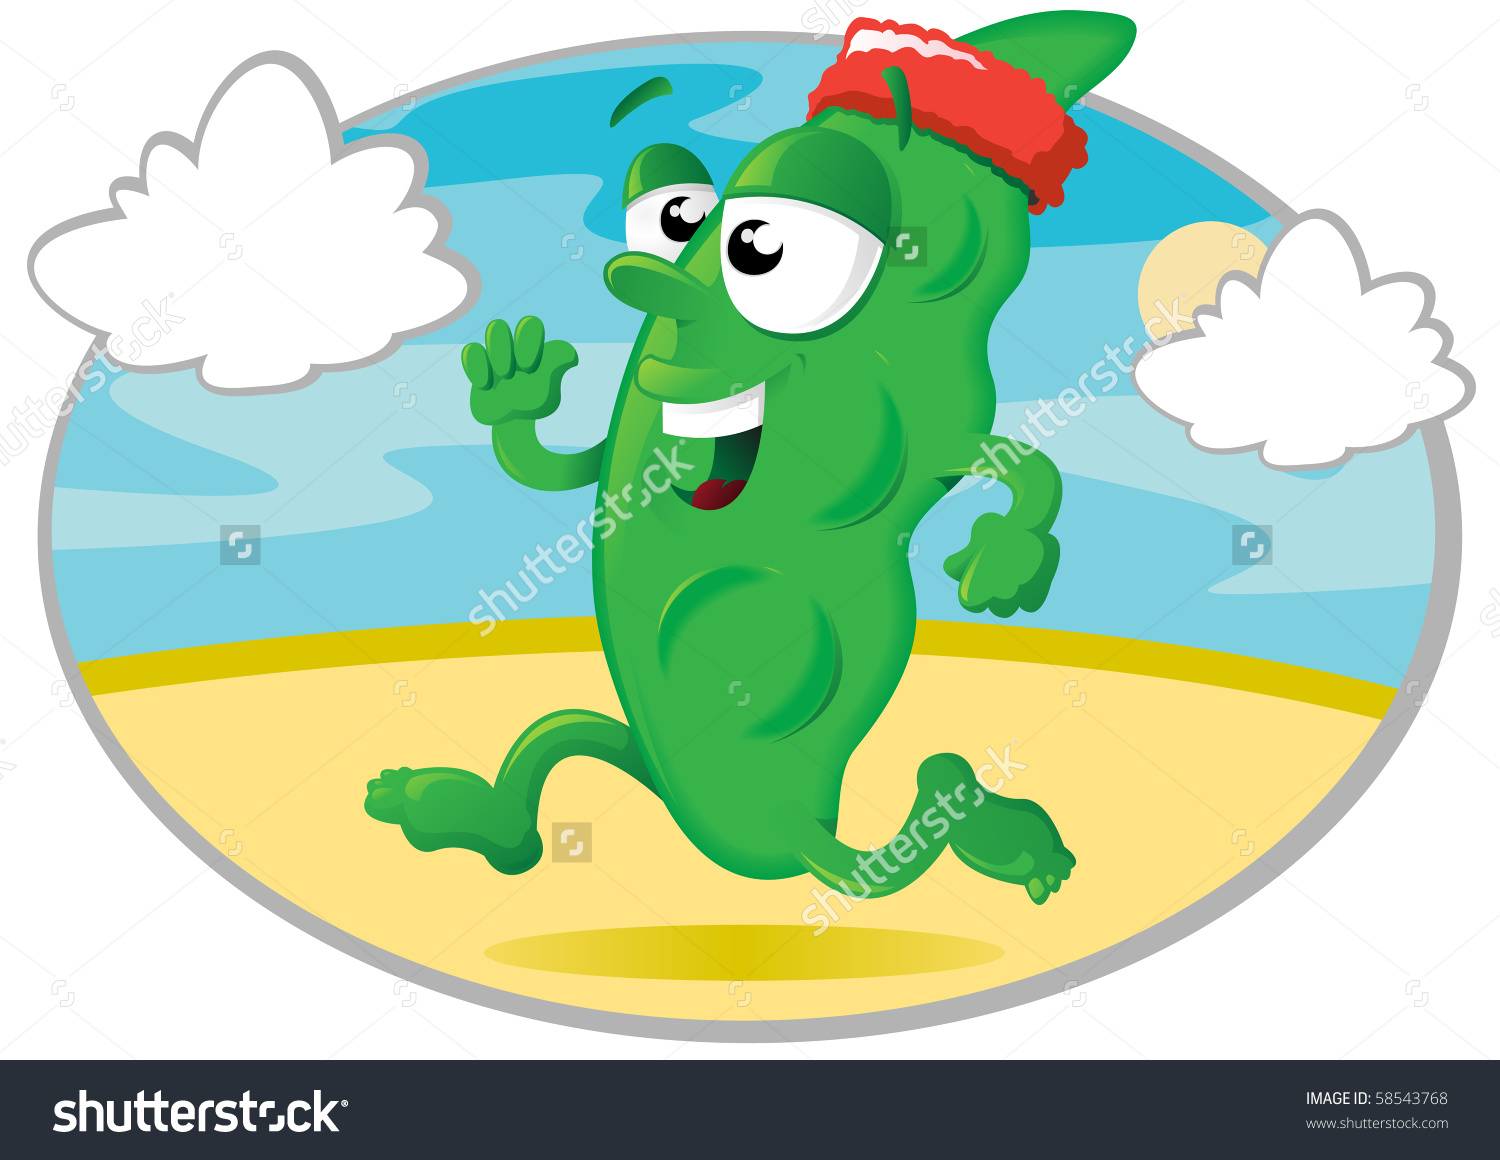 Runner clipground save to. Beans clipart bean pod